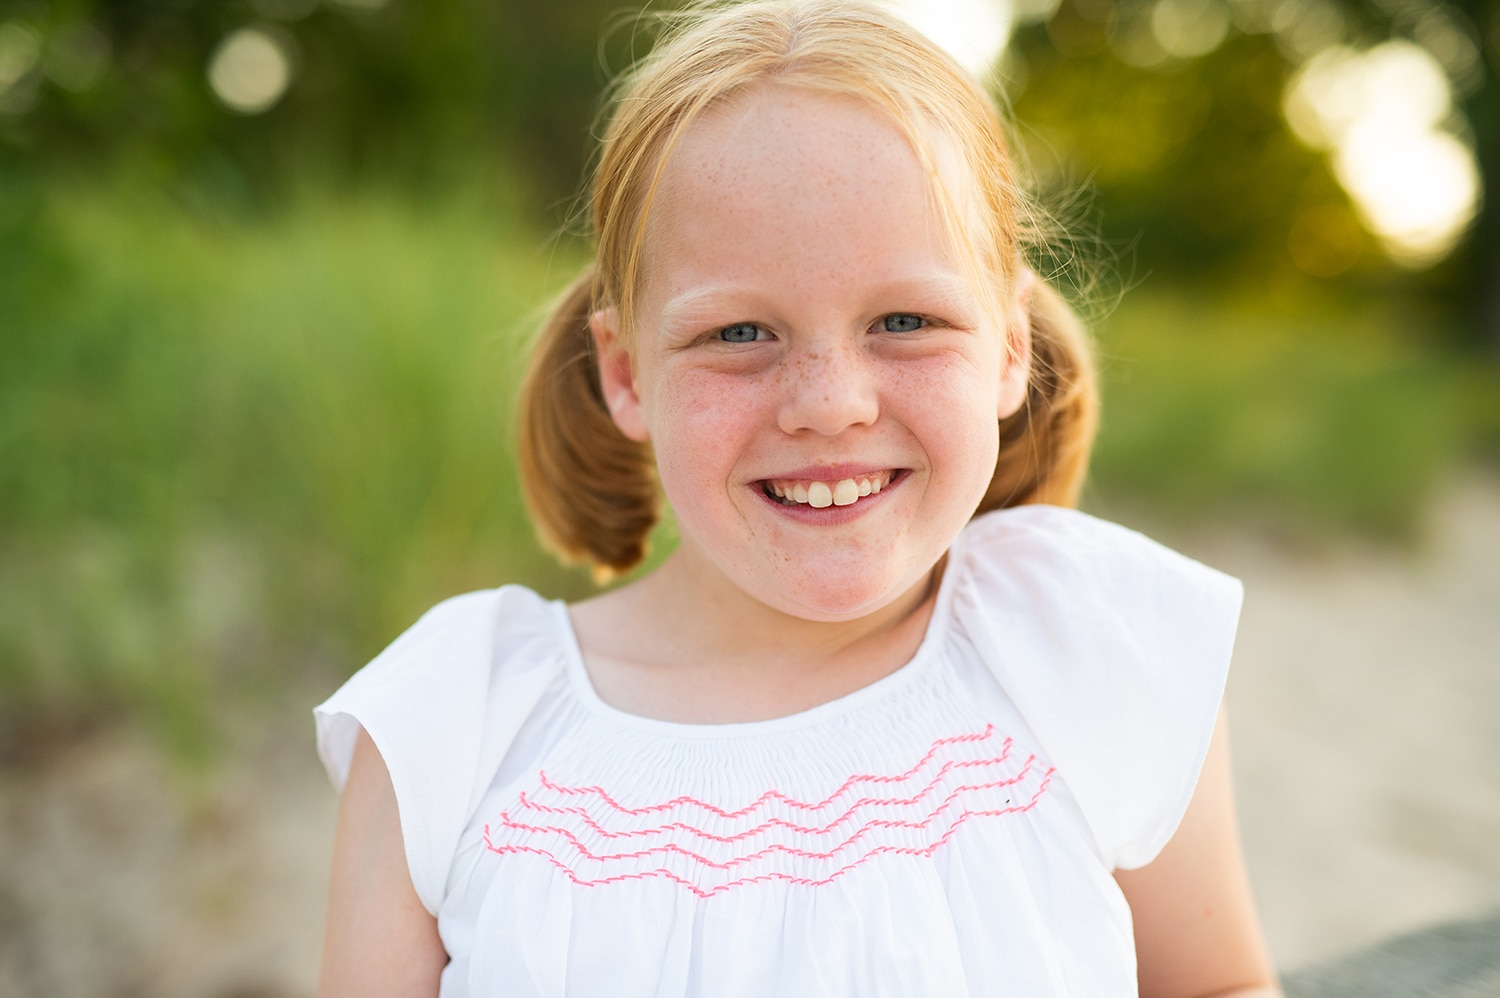 Little girl with red hair and freckles smiling. She's wearing a white dress and her hair is in pigtails.